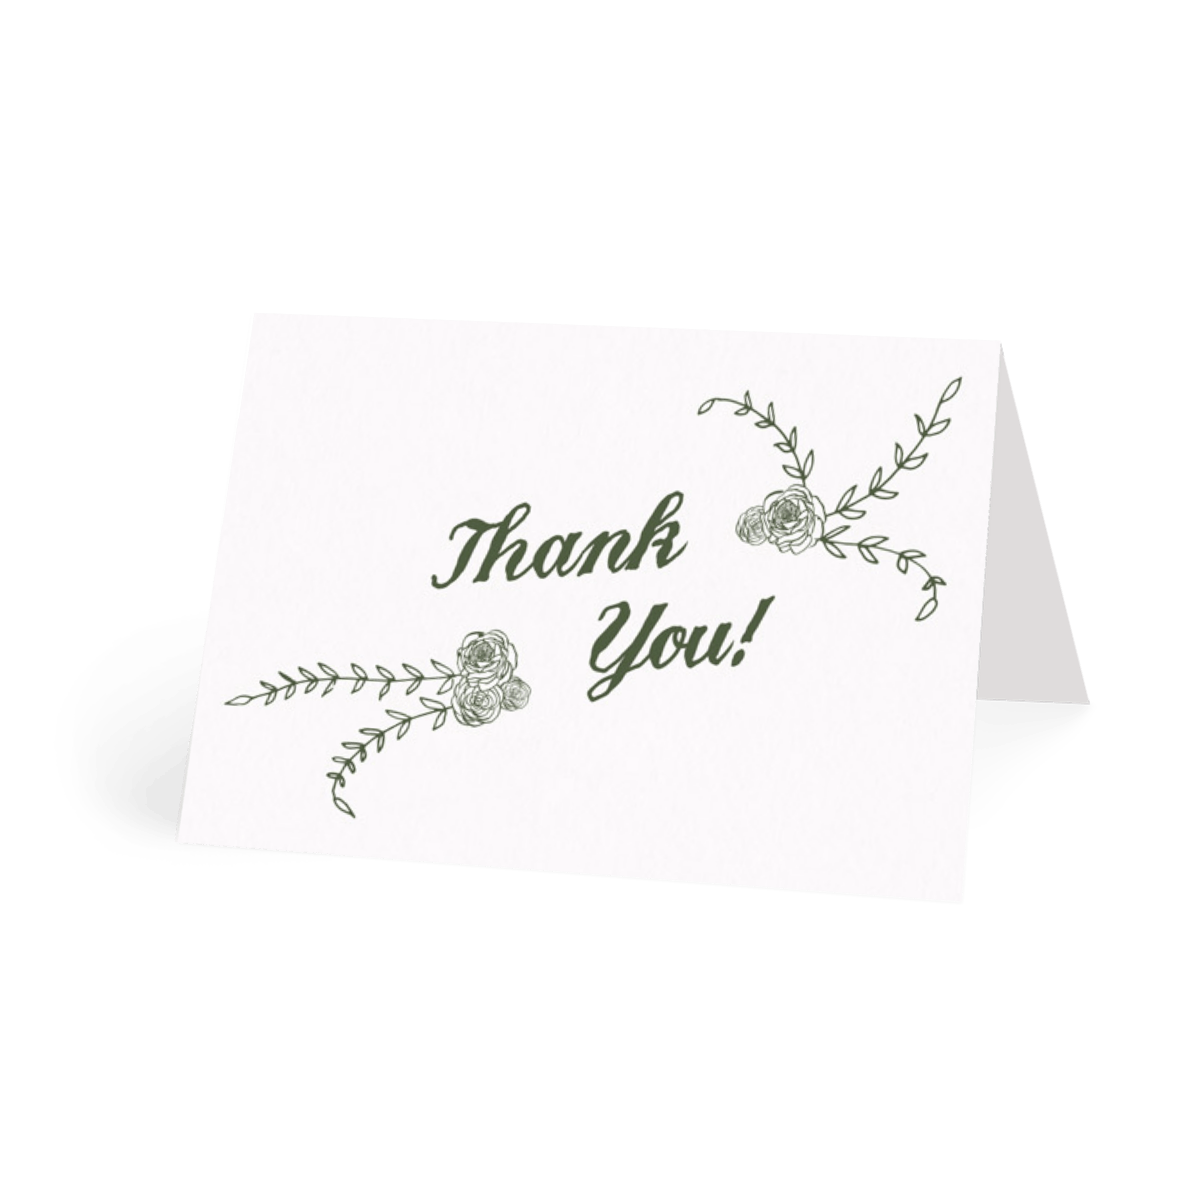 Https%3a%2f%2fwww.papier.com%2fproduct image%2f4090%2f14%2fverdant thank you 1083 front 1453911144.png?ixlib=rb 1.1